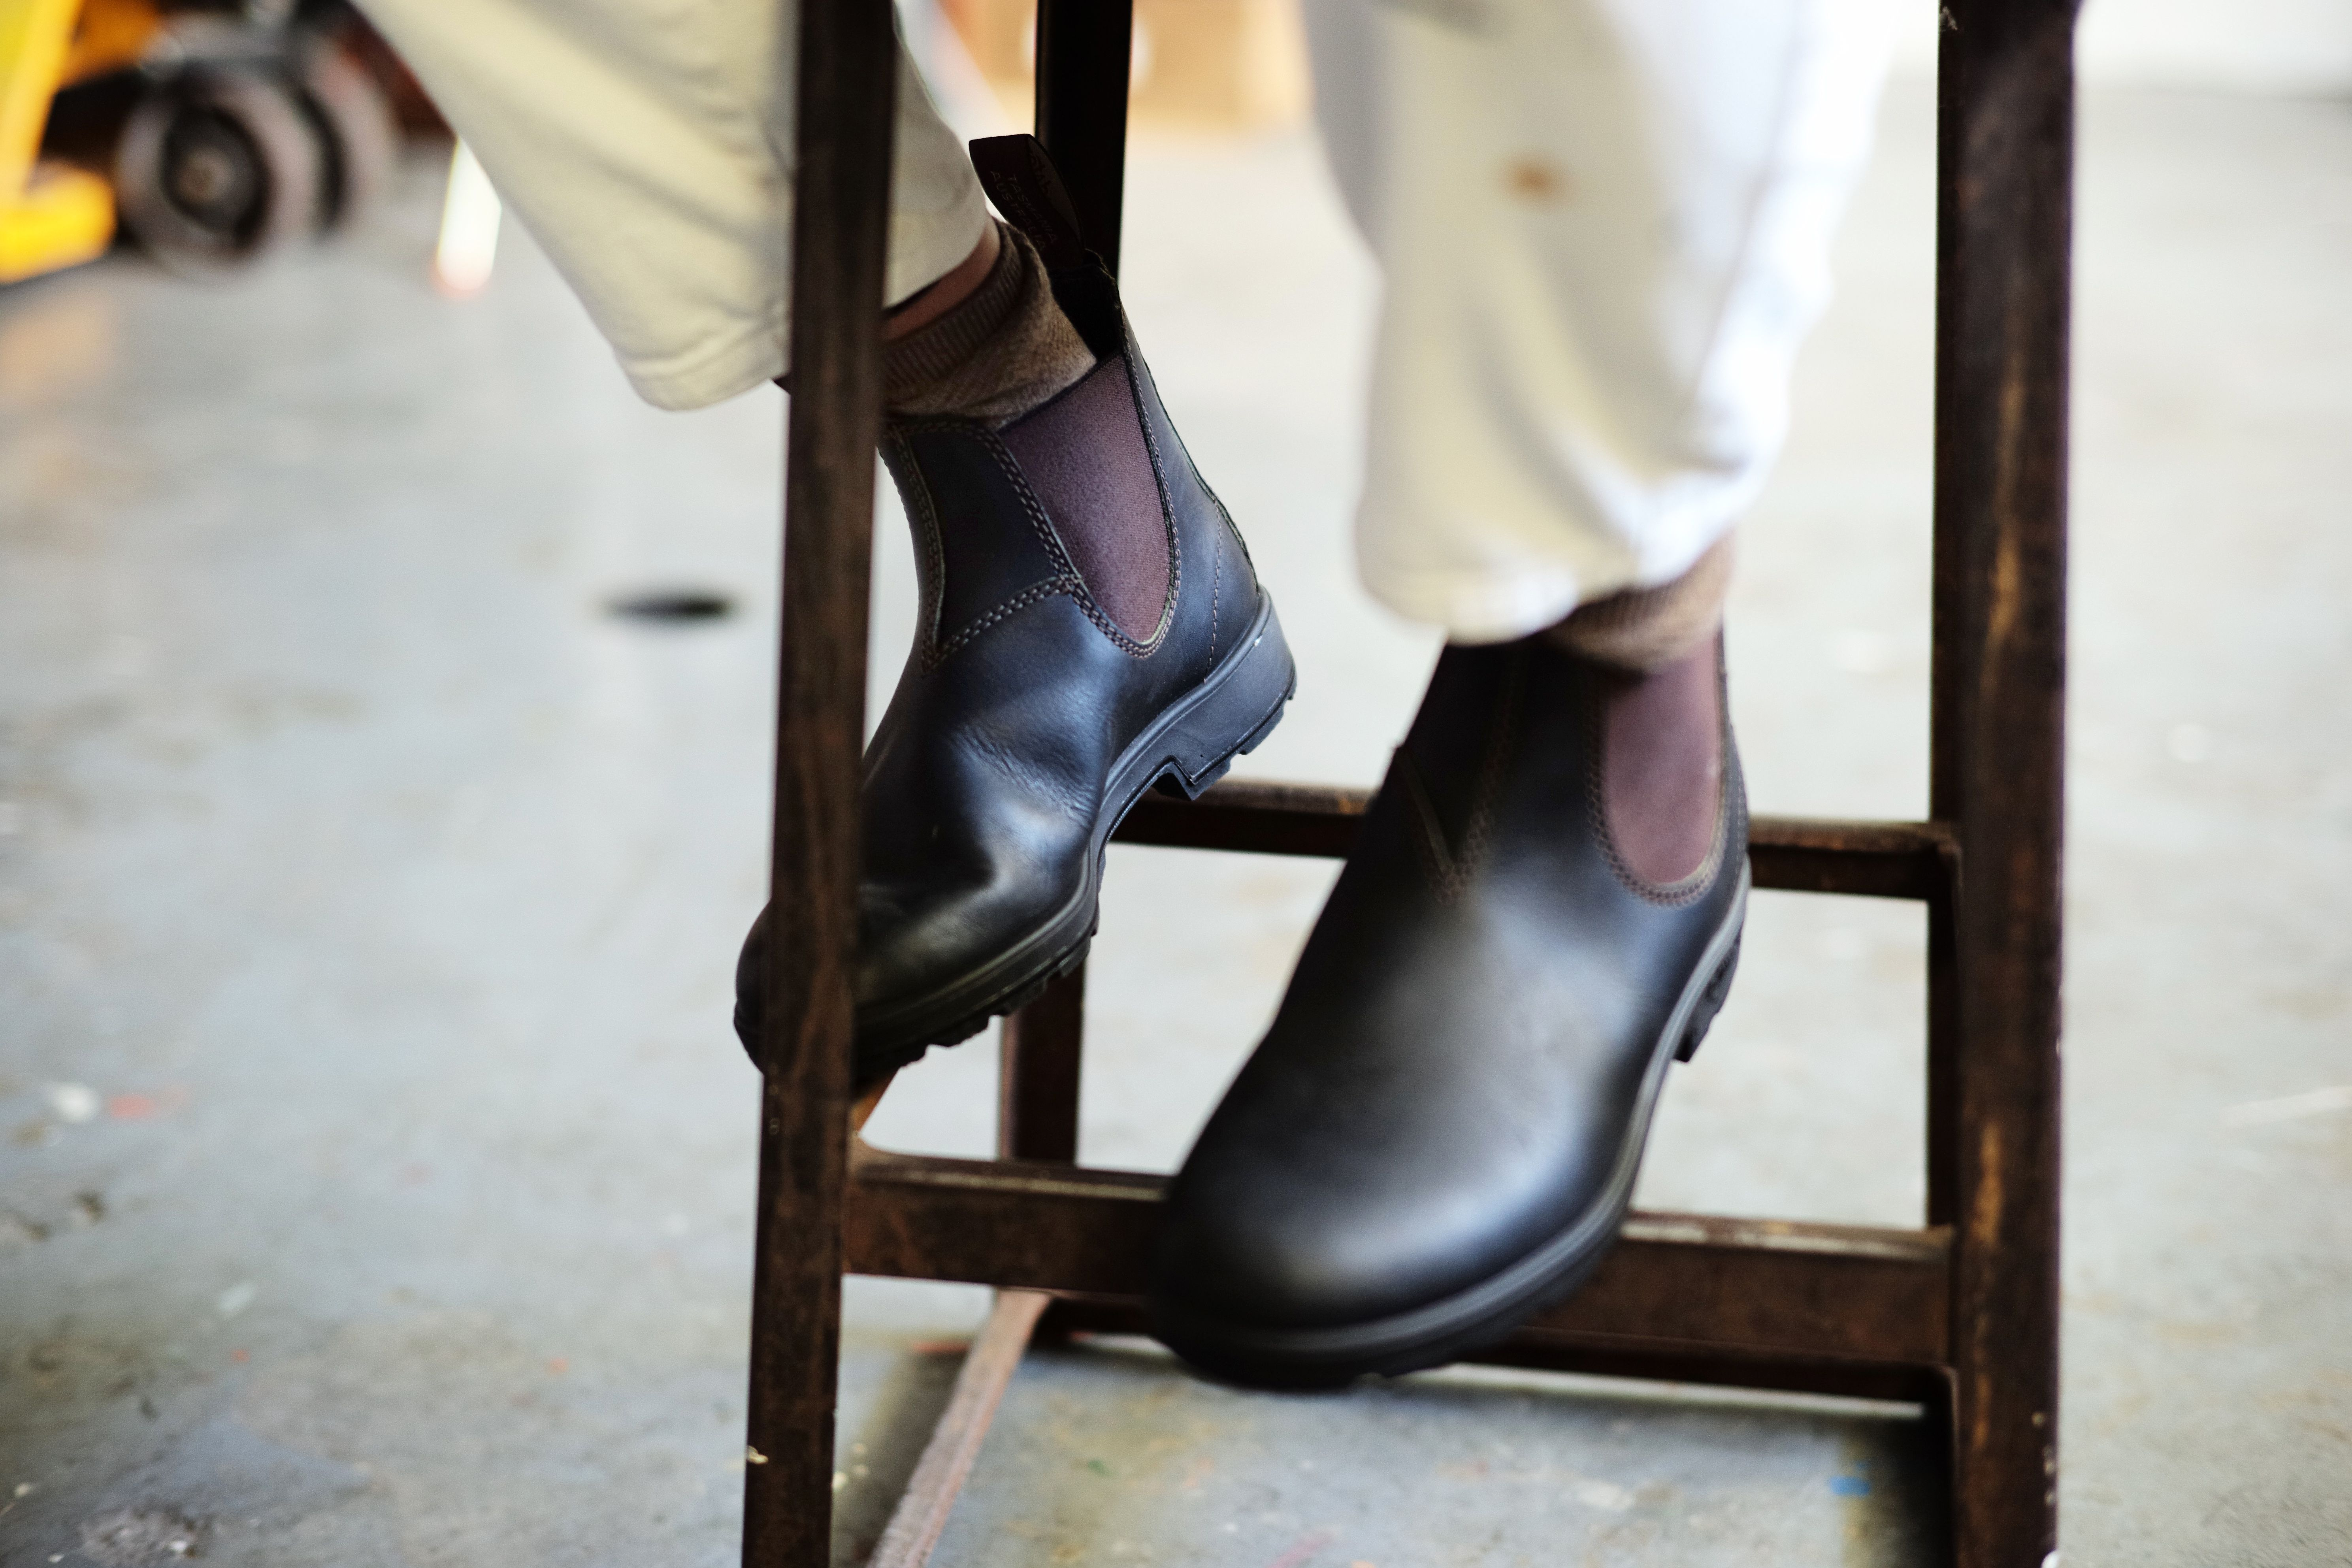 The Original 500 boot in Stout Brown, Style #500 #art #inspo